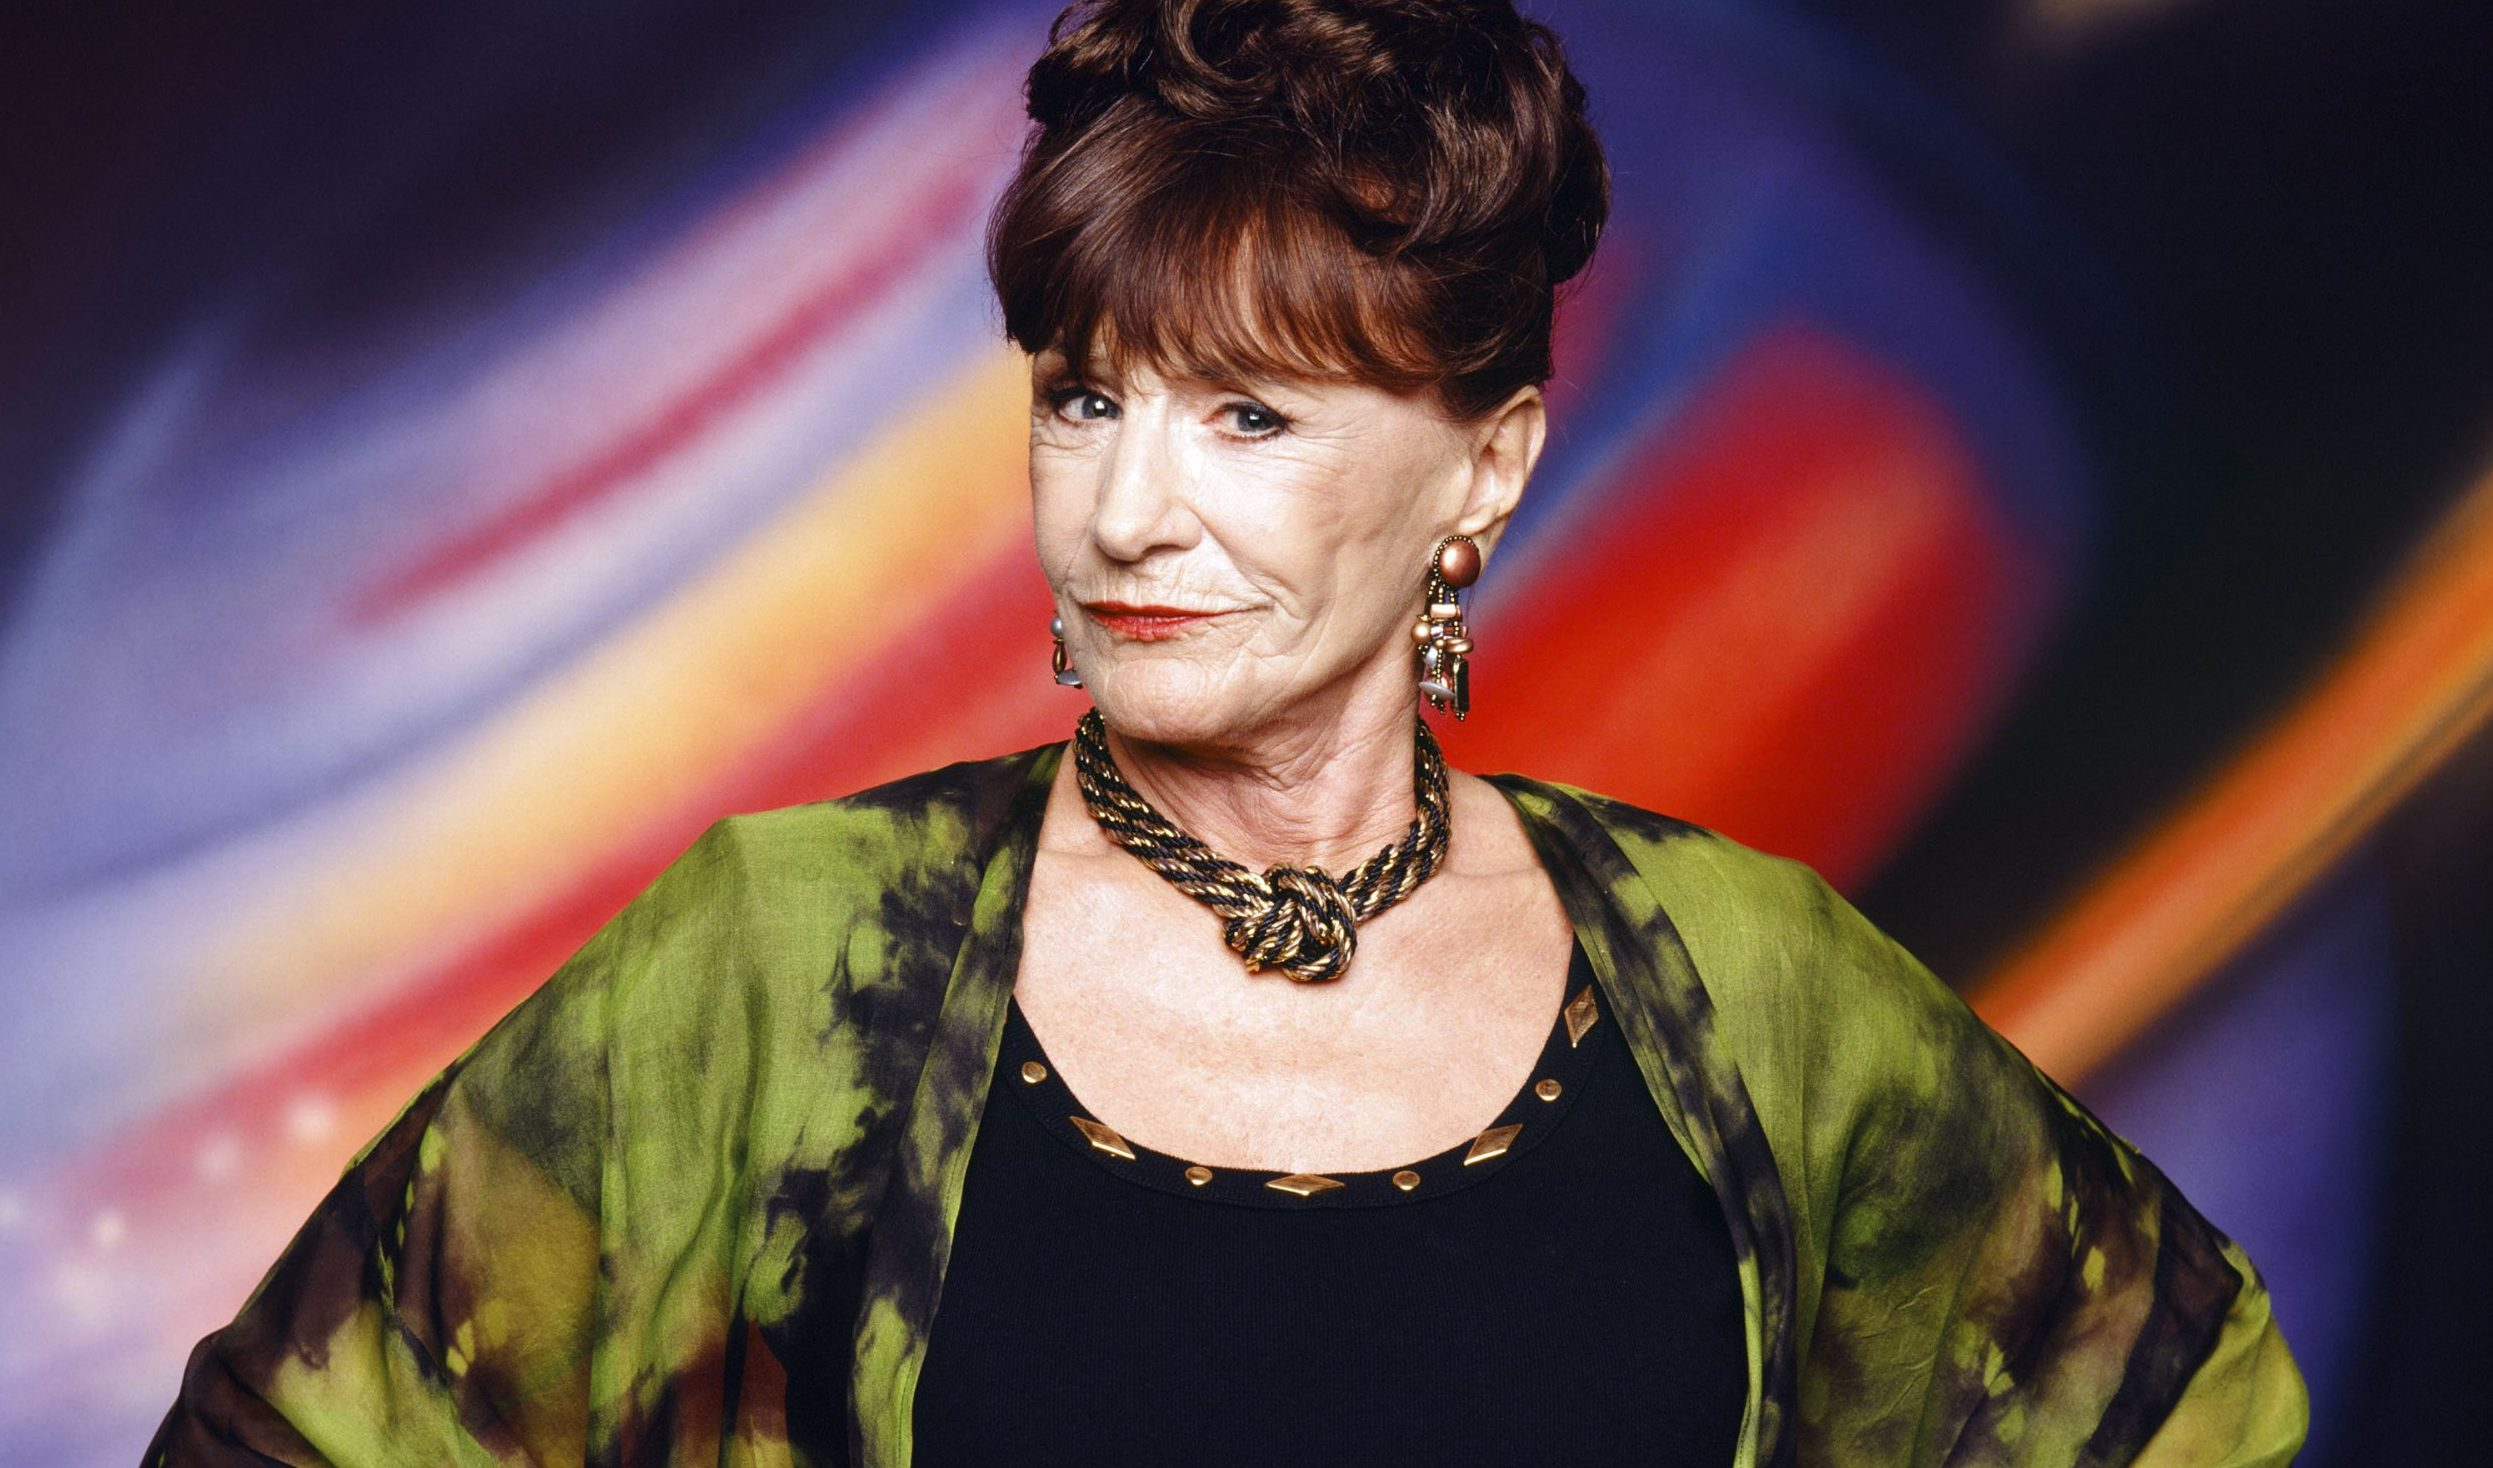 Third Rock from the Sun actress Elmarie Wendel dead aged 89